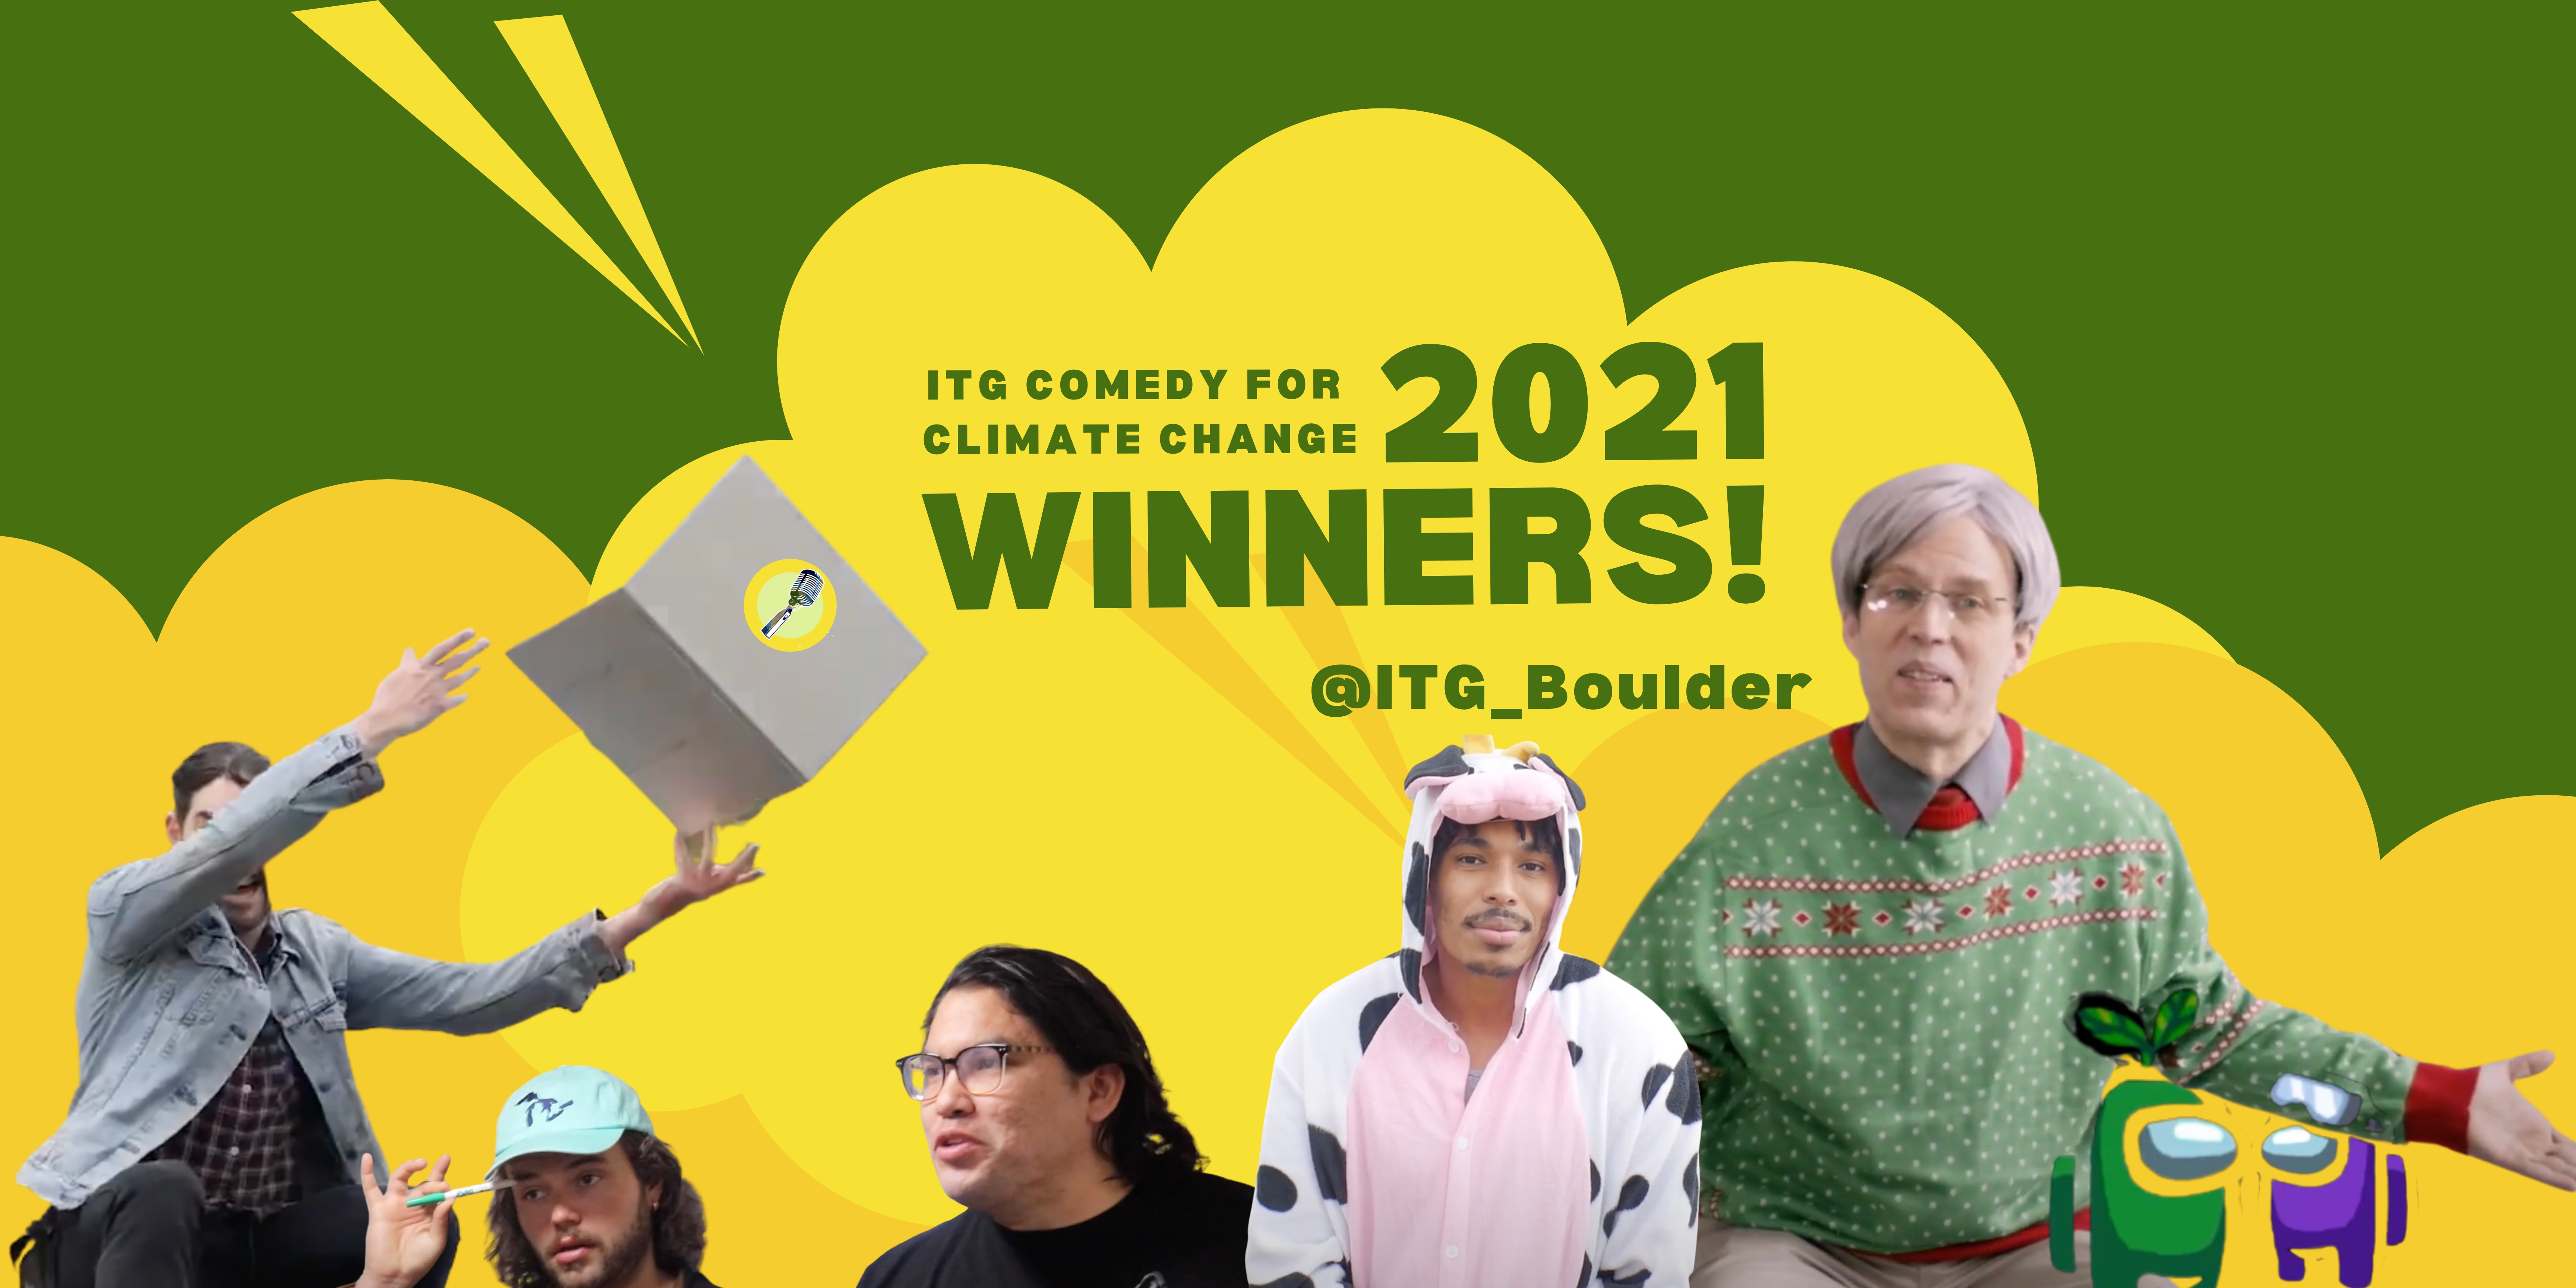 ITG Comedy for Climate Change Winners on Green and Yellow Background with images from winning videos. Images from left to right: Man throwing laptop, man with hat and pen, man with glasses, man in cow costume,  man in Christmas sweater, Green and Purple Among Us avatars.